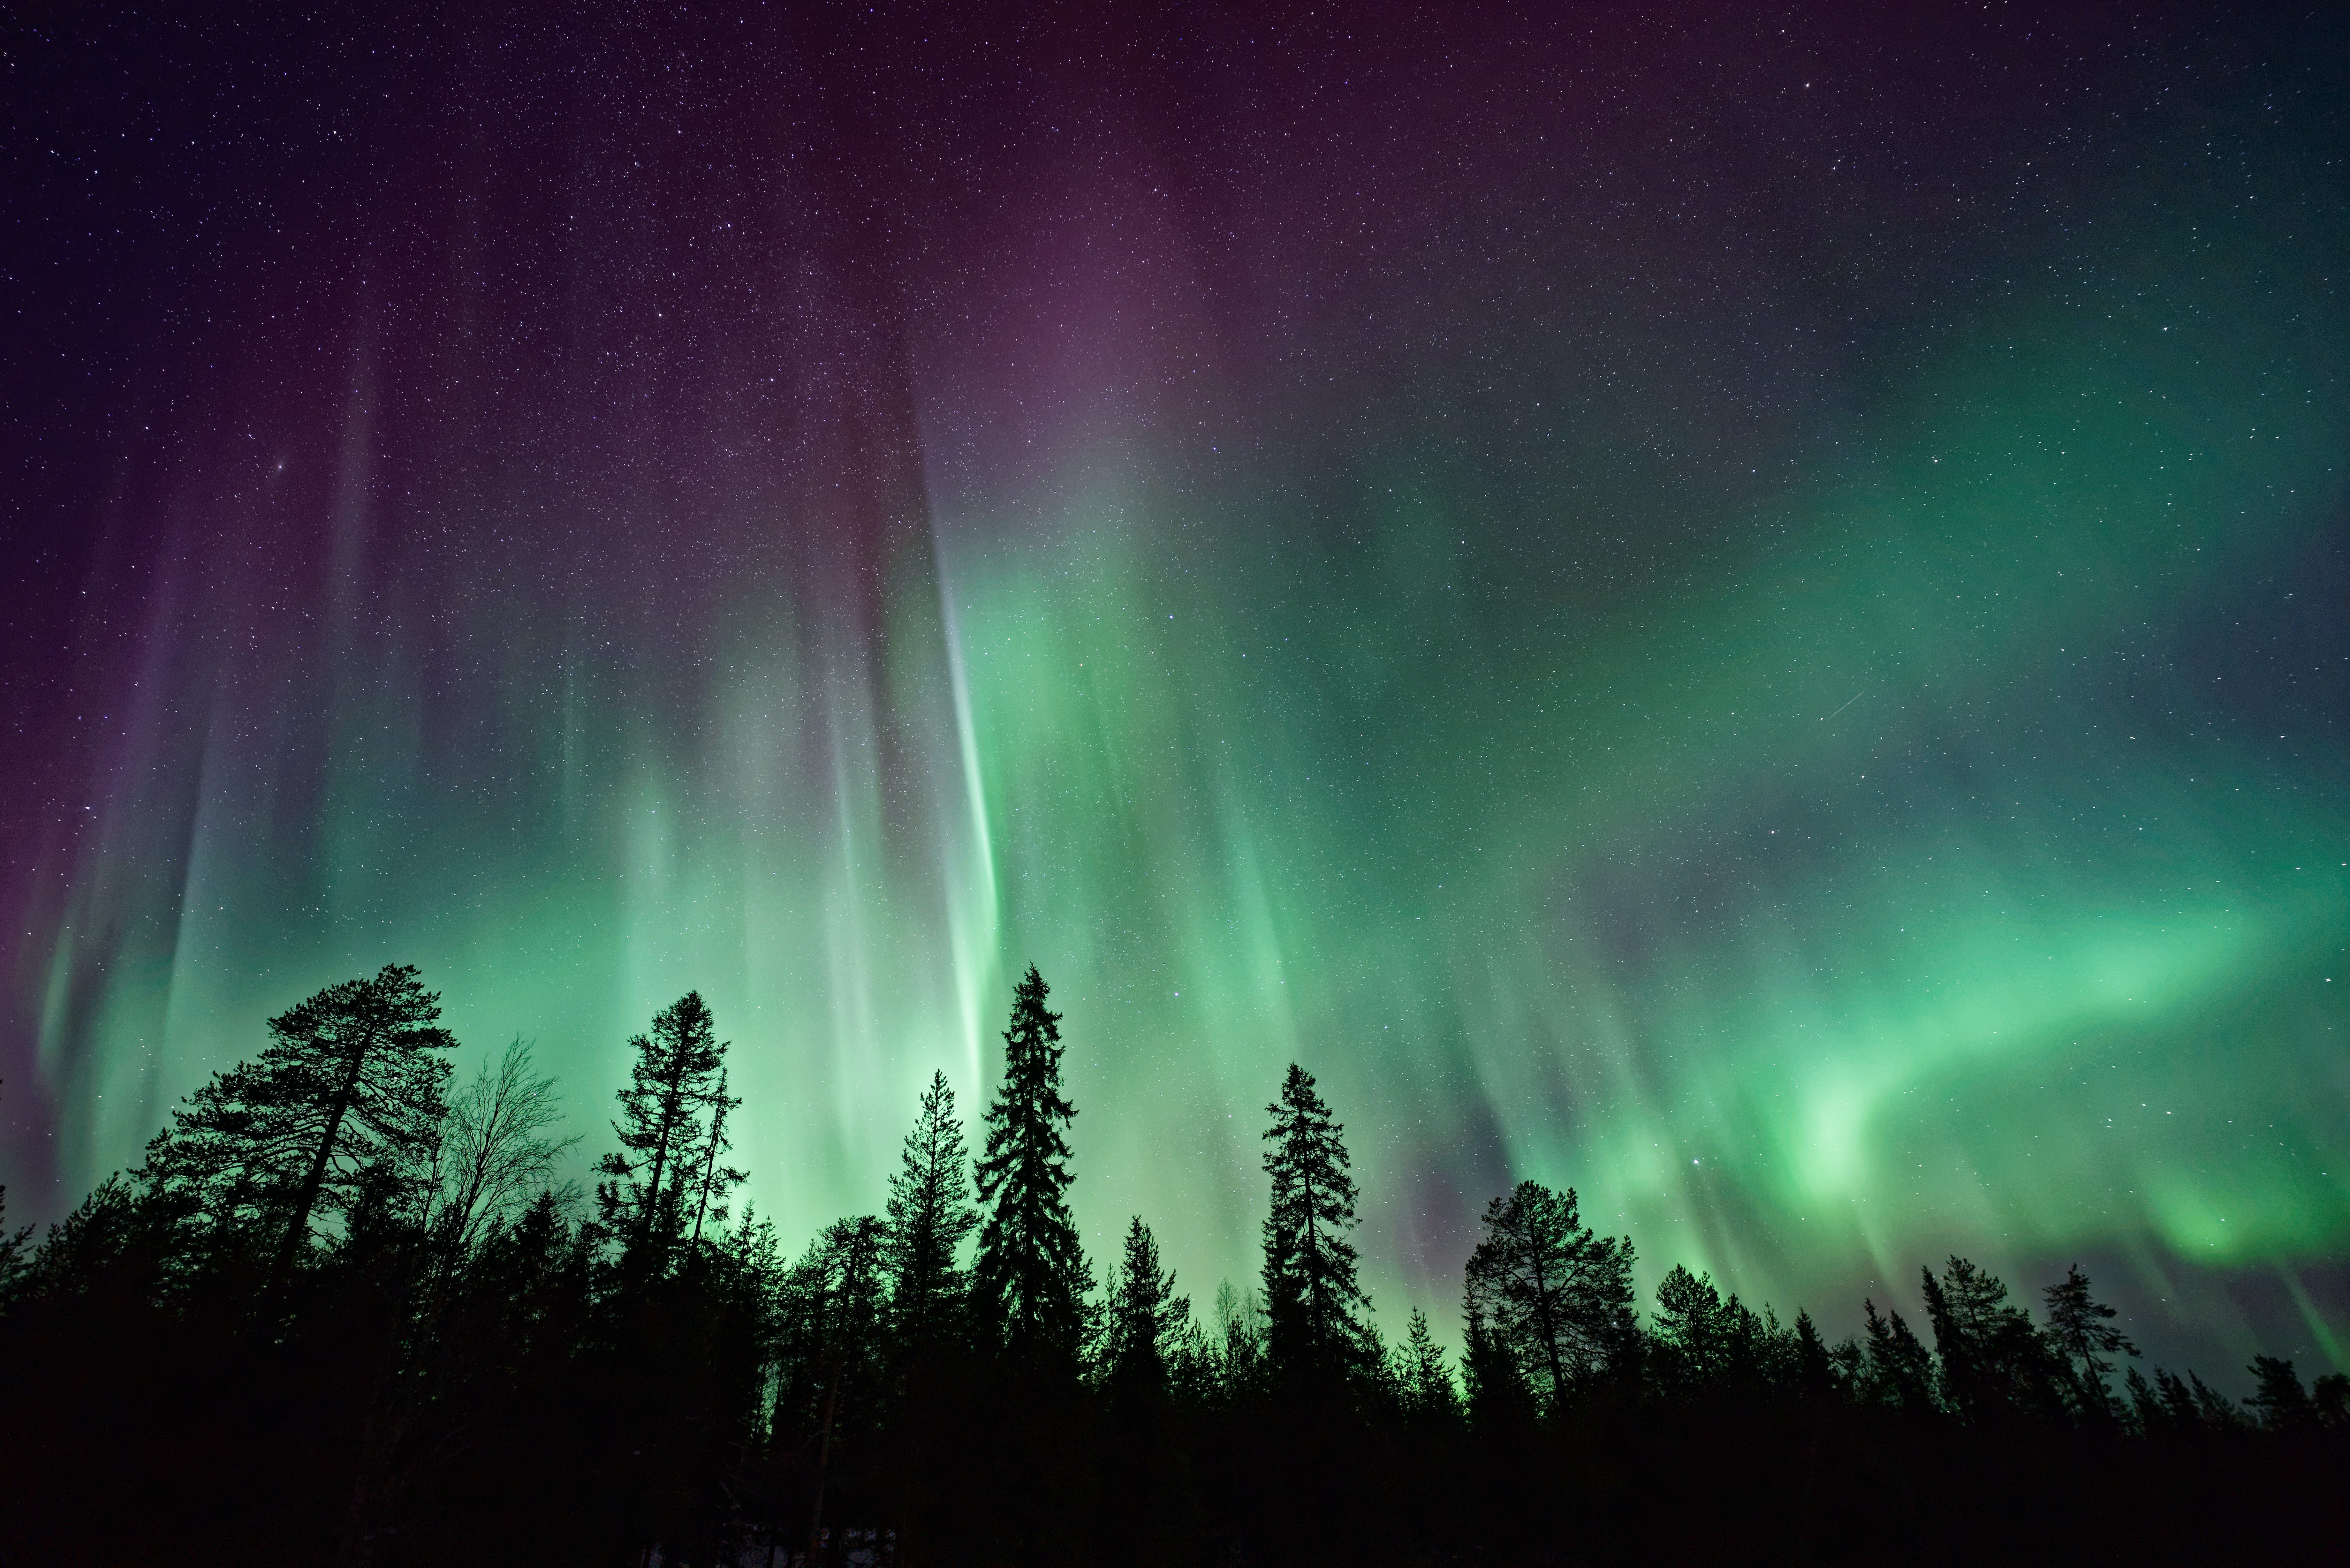 silhouette of trees near Aurora Borealis at night